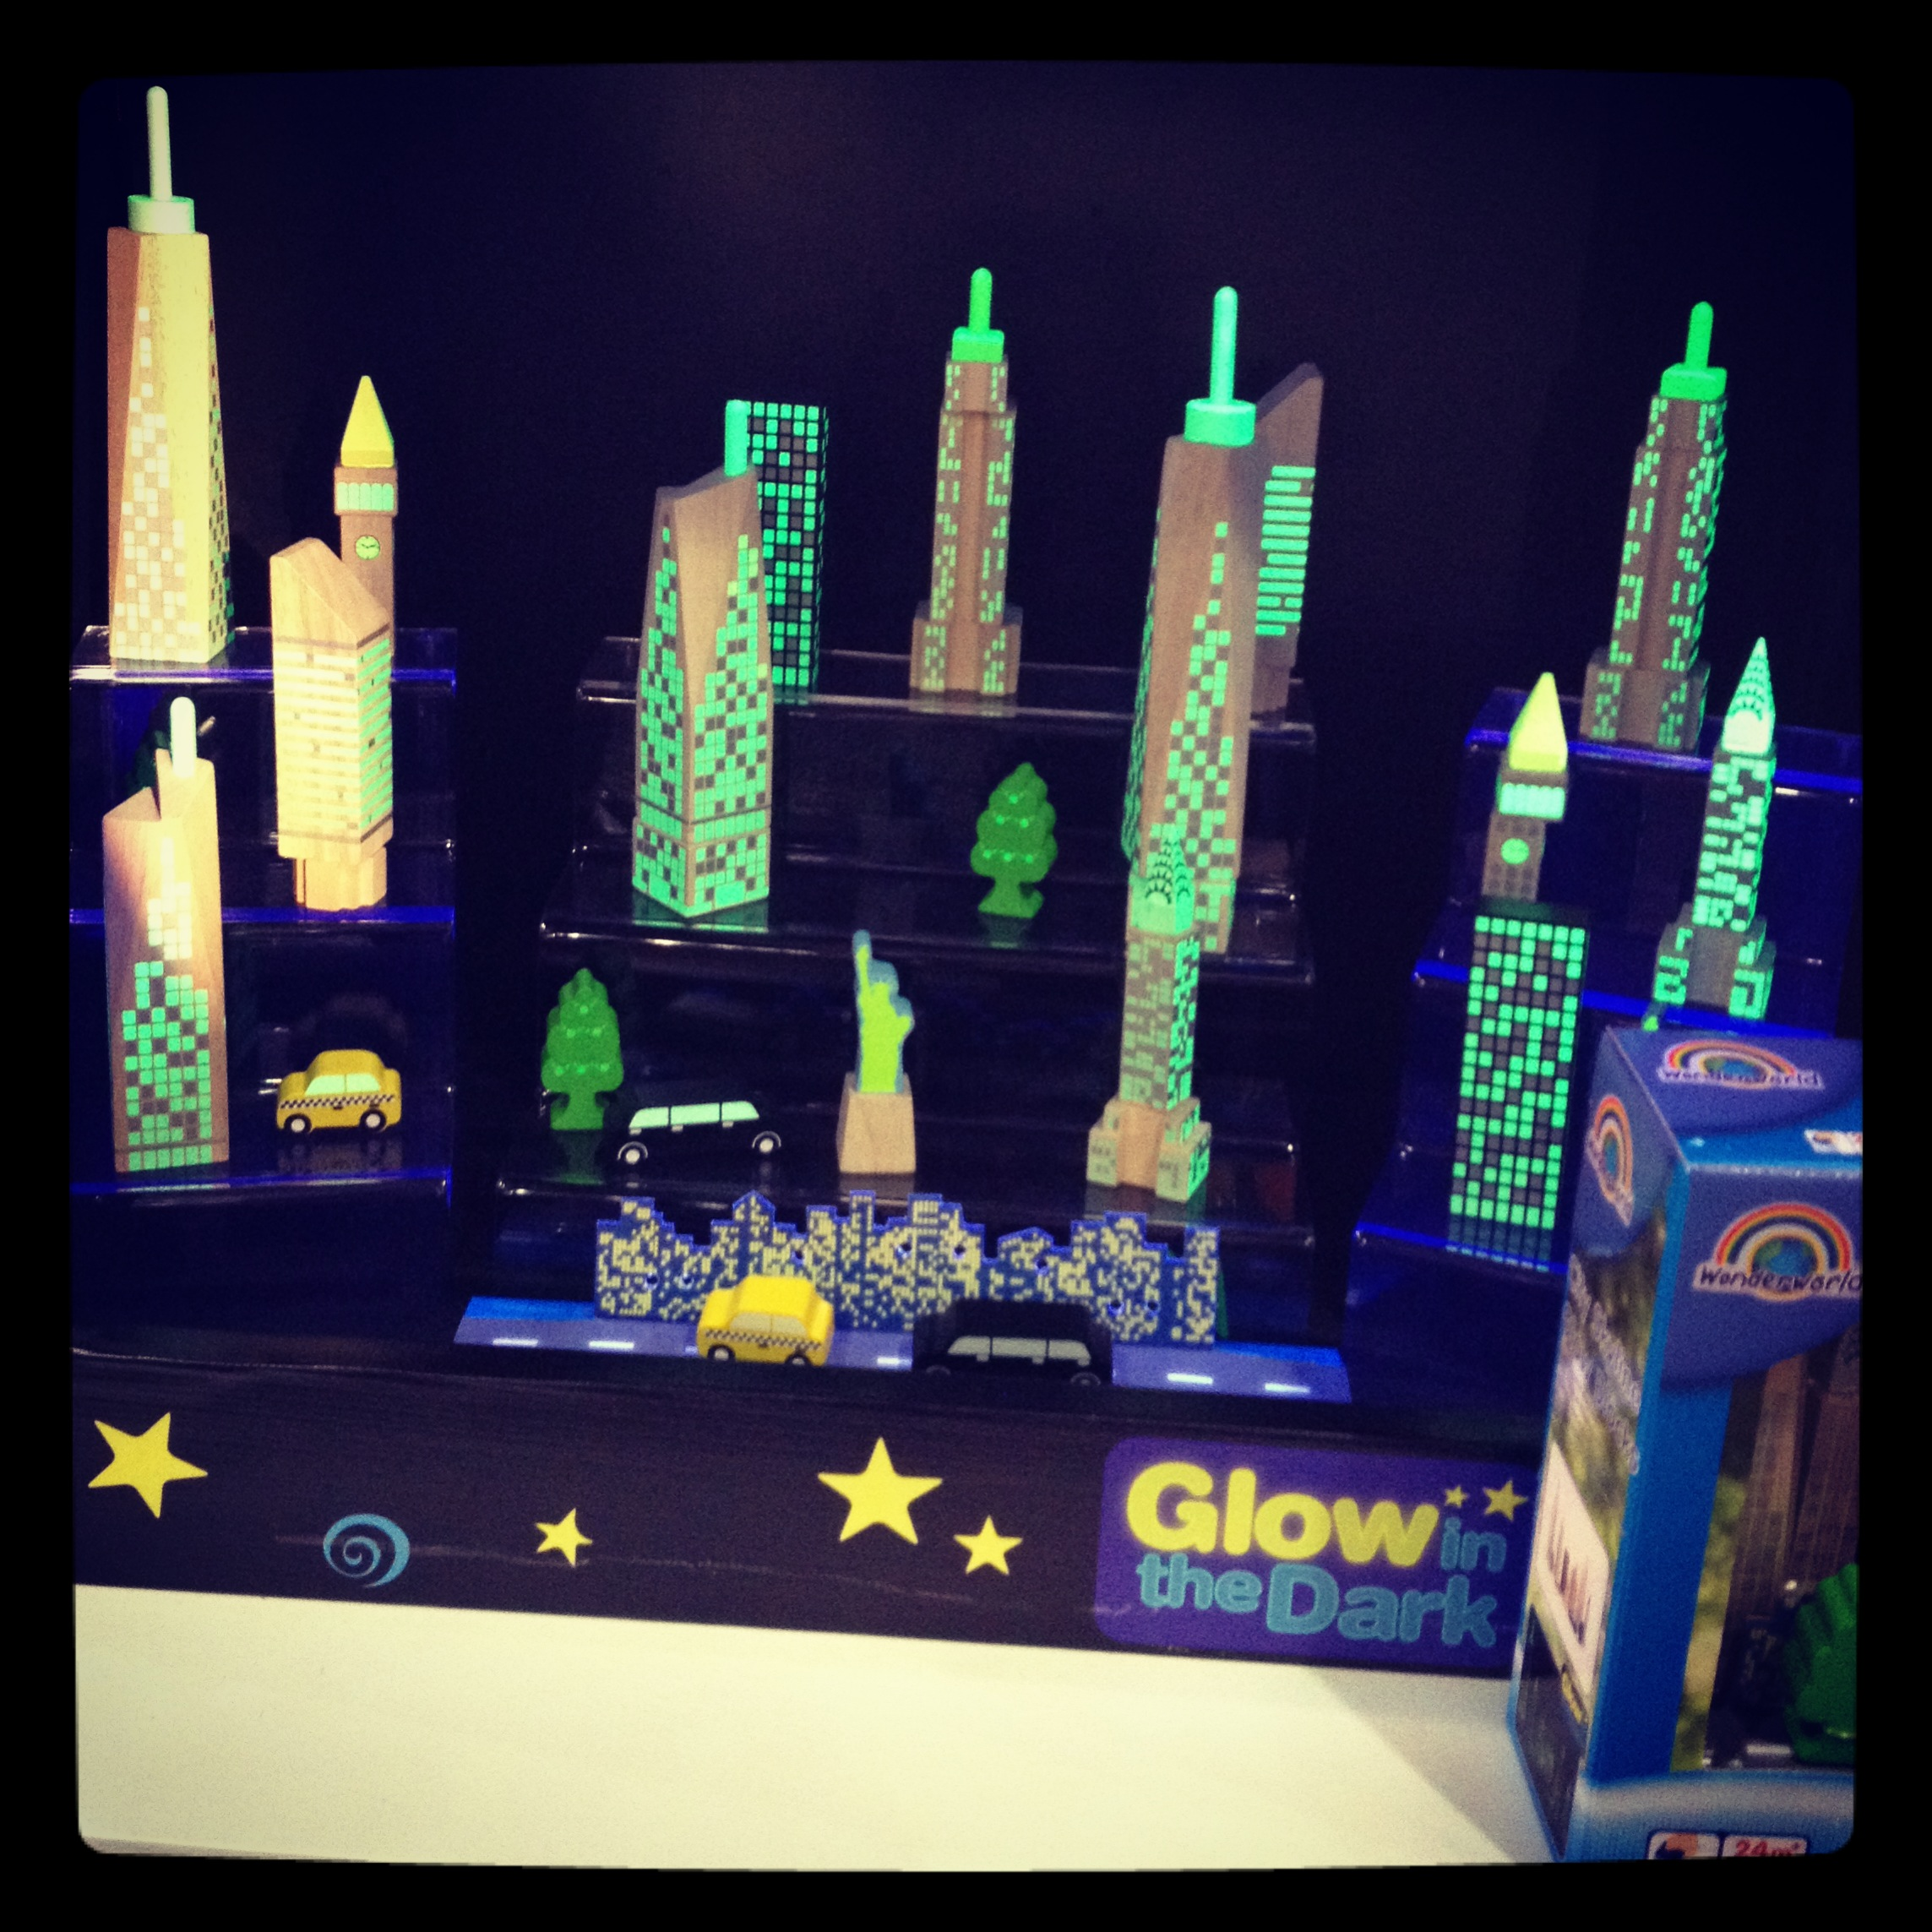 Wonderworld's Glow in the Dark city blocks were a fun find — and are made from eco-friendly rubberwood, too!